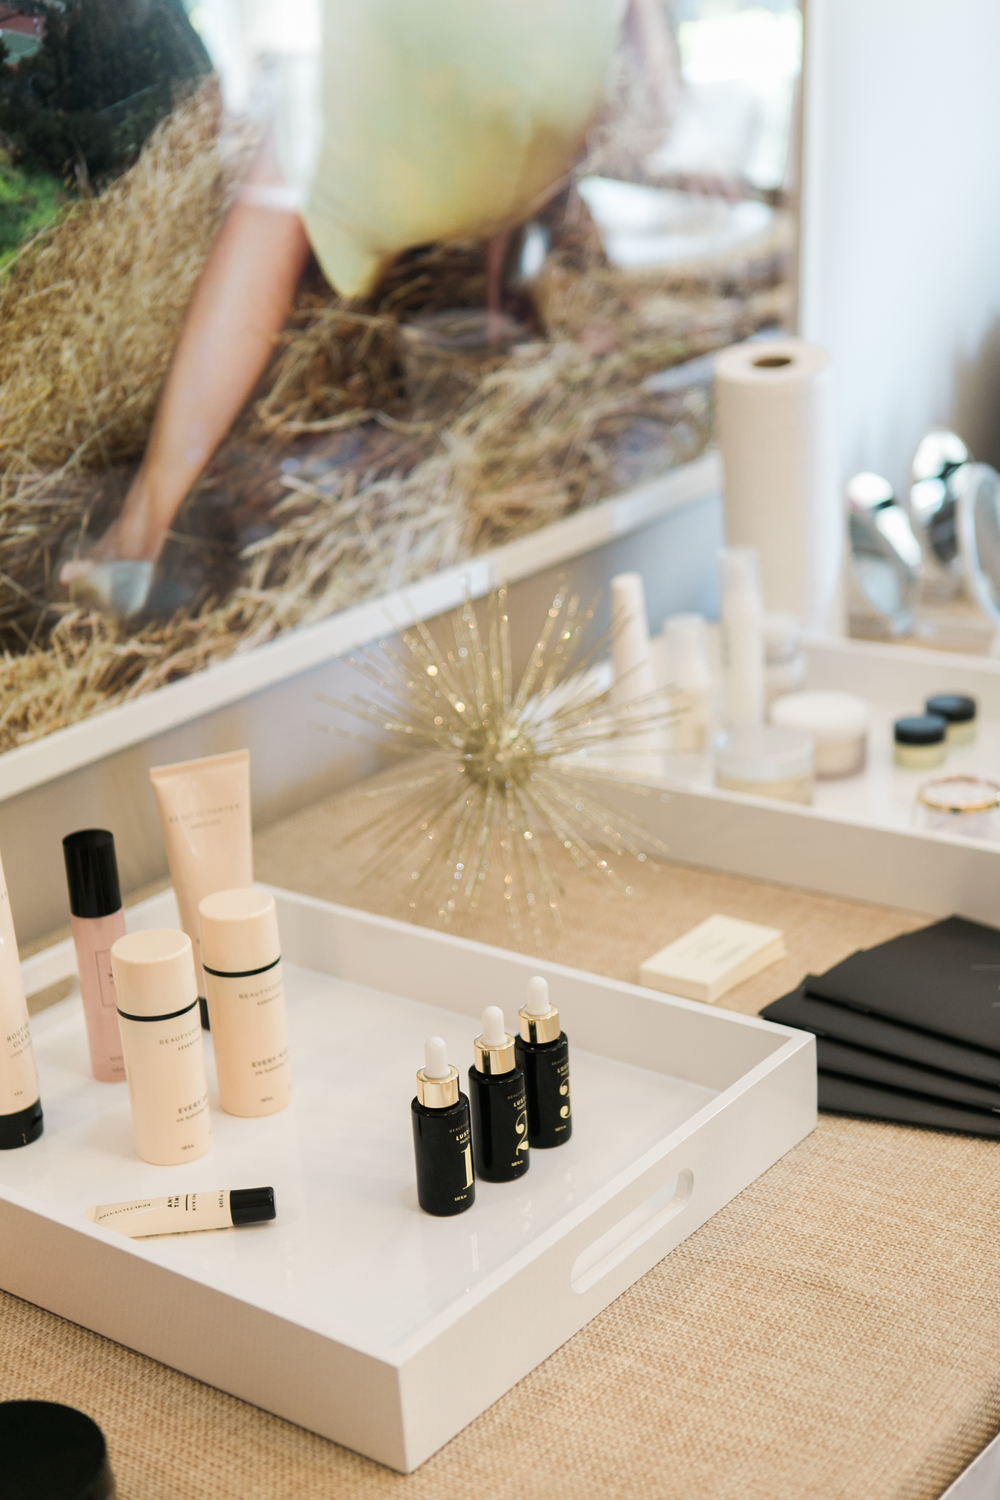 Beauty Counter. Photo by Jenna Elliott of One Eleven Photography